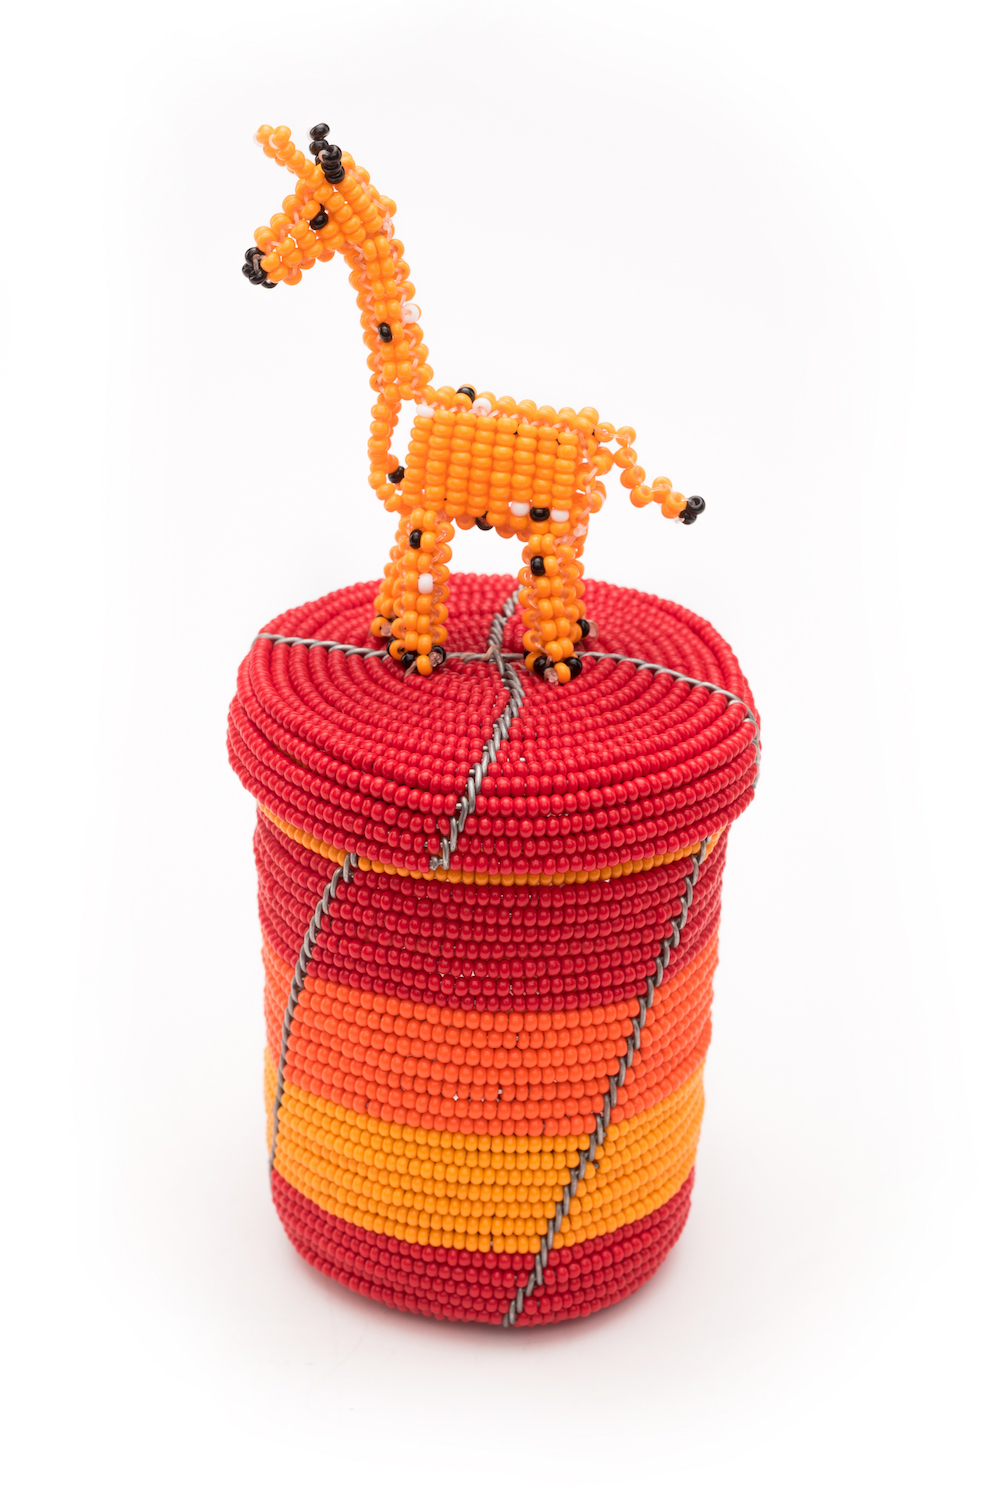 Giraffe box (tall)